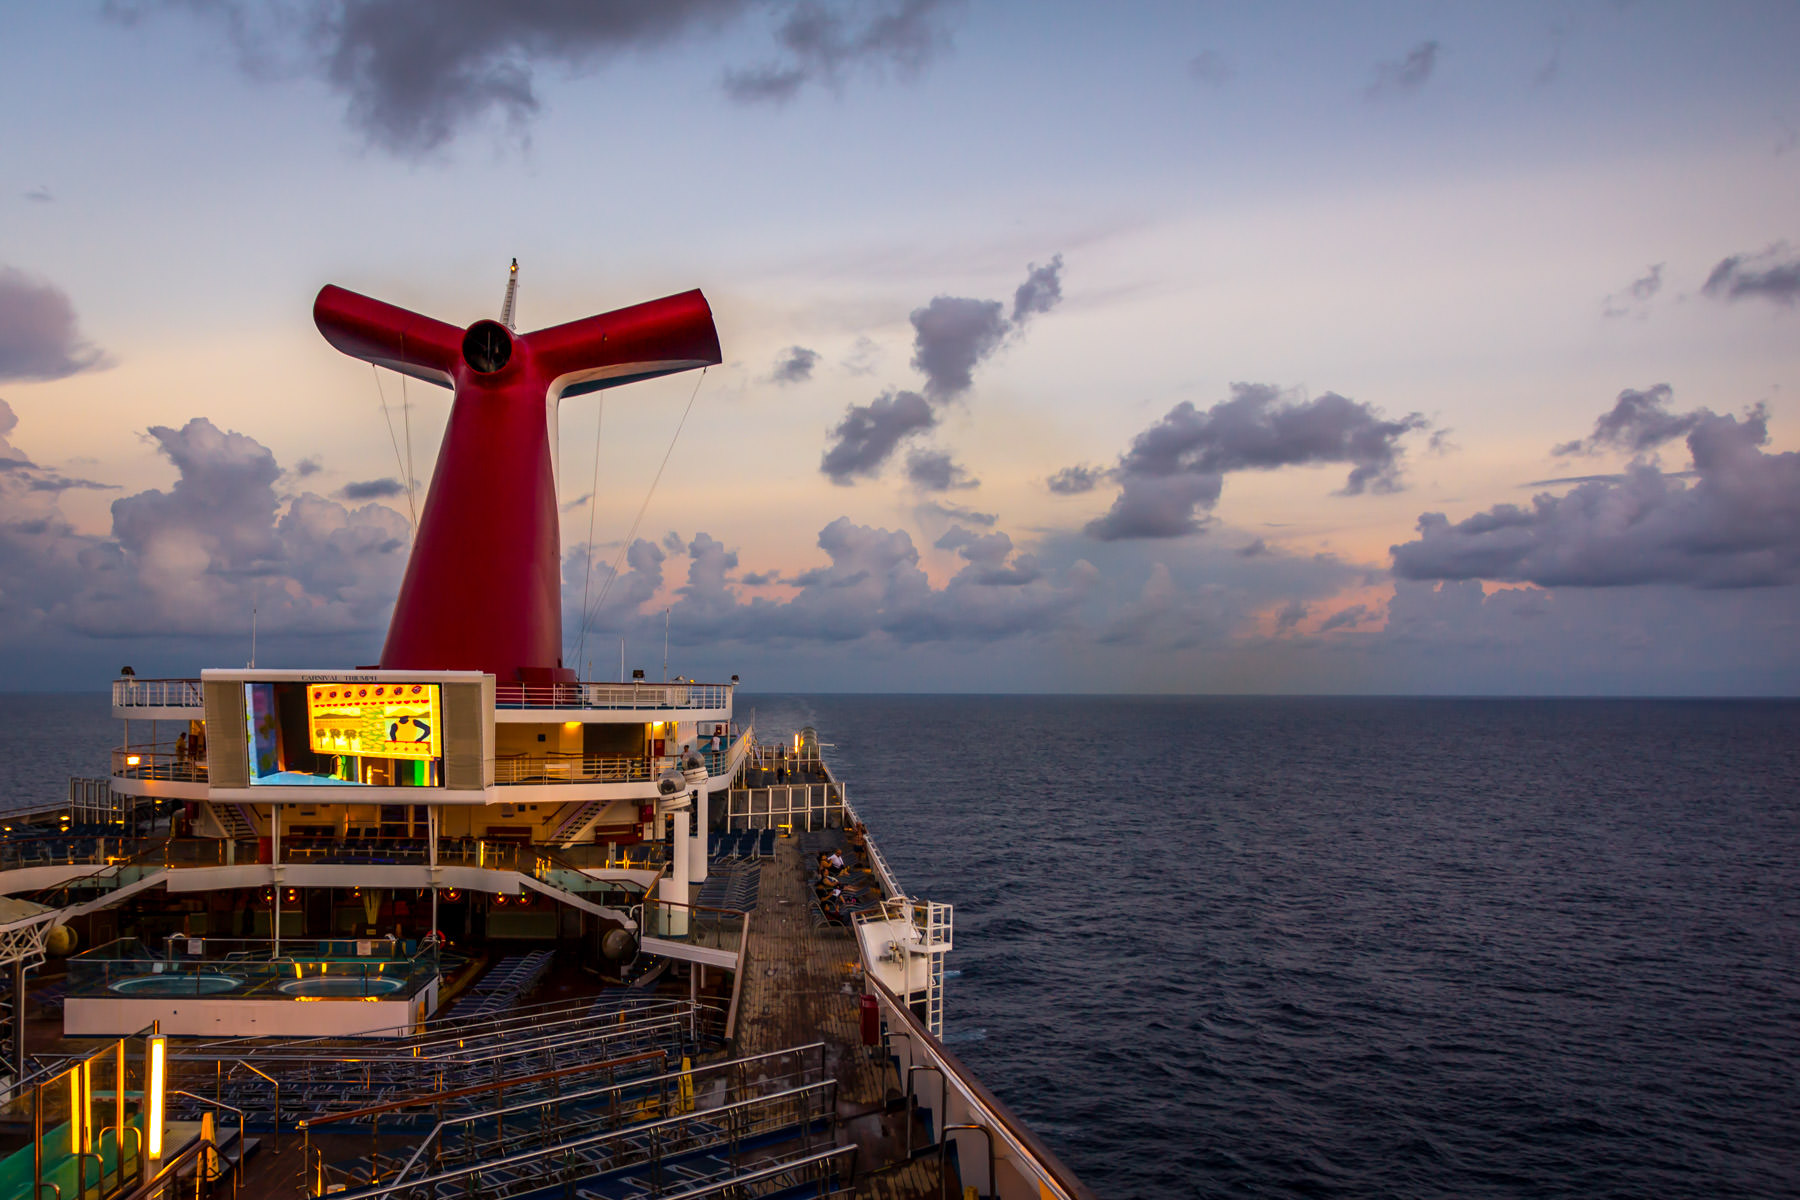 Morning twilight lights the Carnival Triumph as she sails through the Gulf of Mexico.